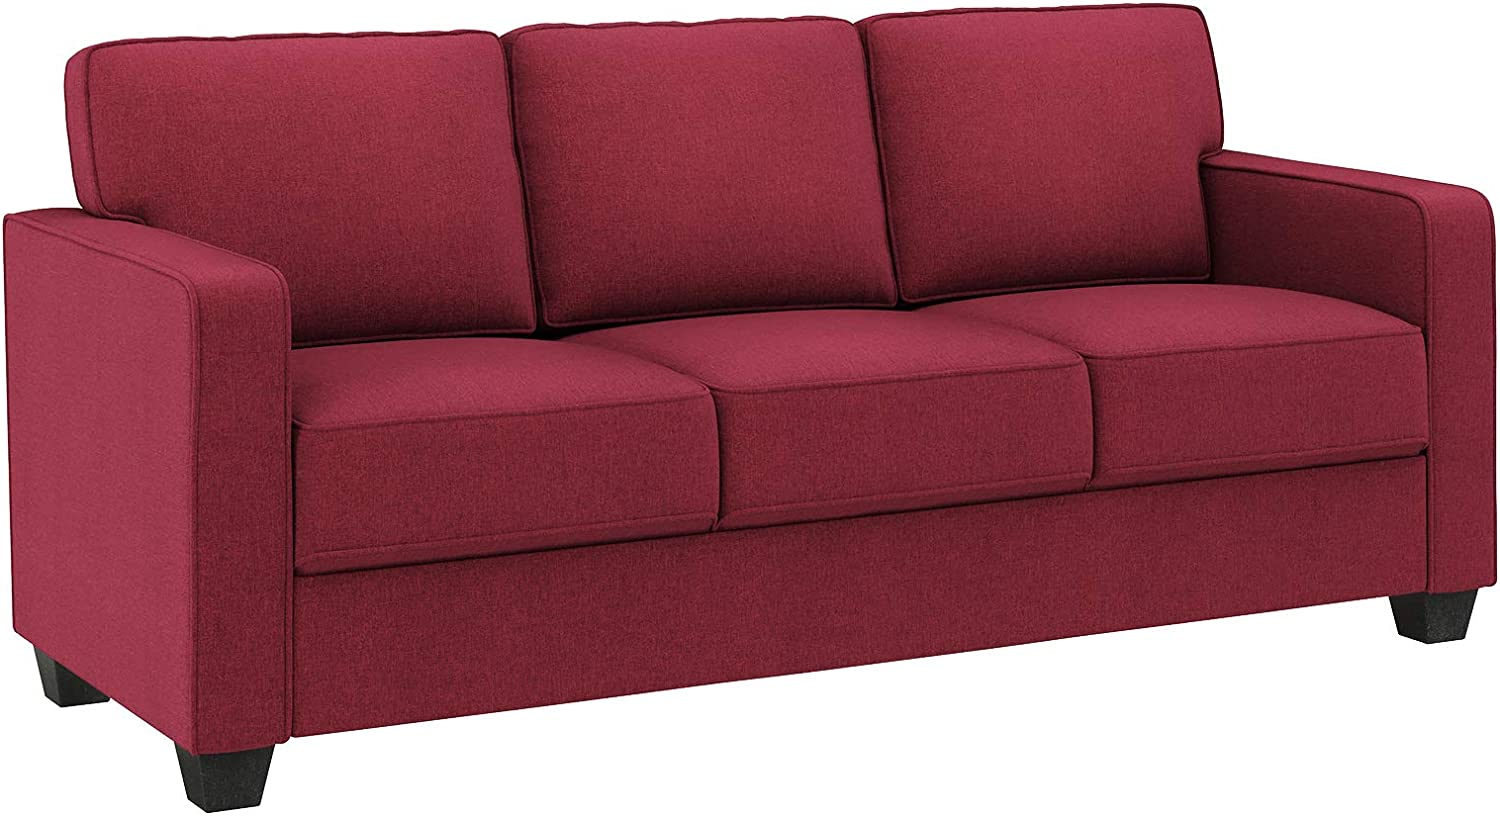 VASAGLE Sofa, Couch for Living Room Modern Upholstered, Cotton-Linen Surface, 78.7 x 32.3 x 35.4 Inches, Red